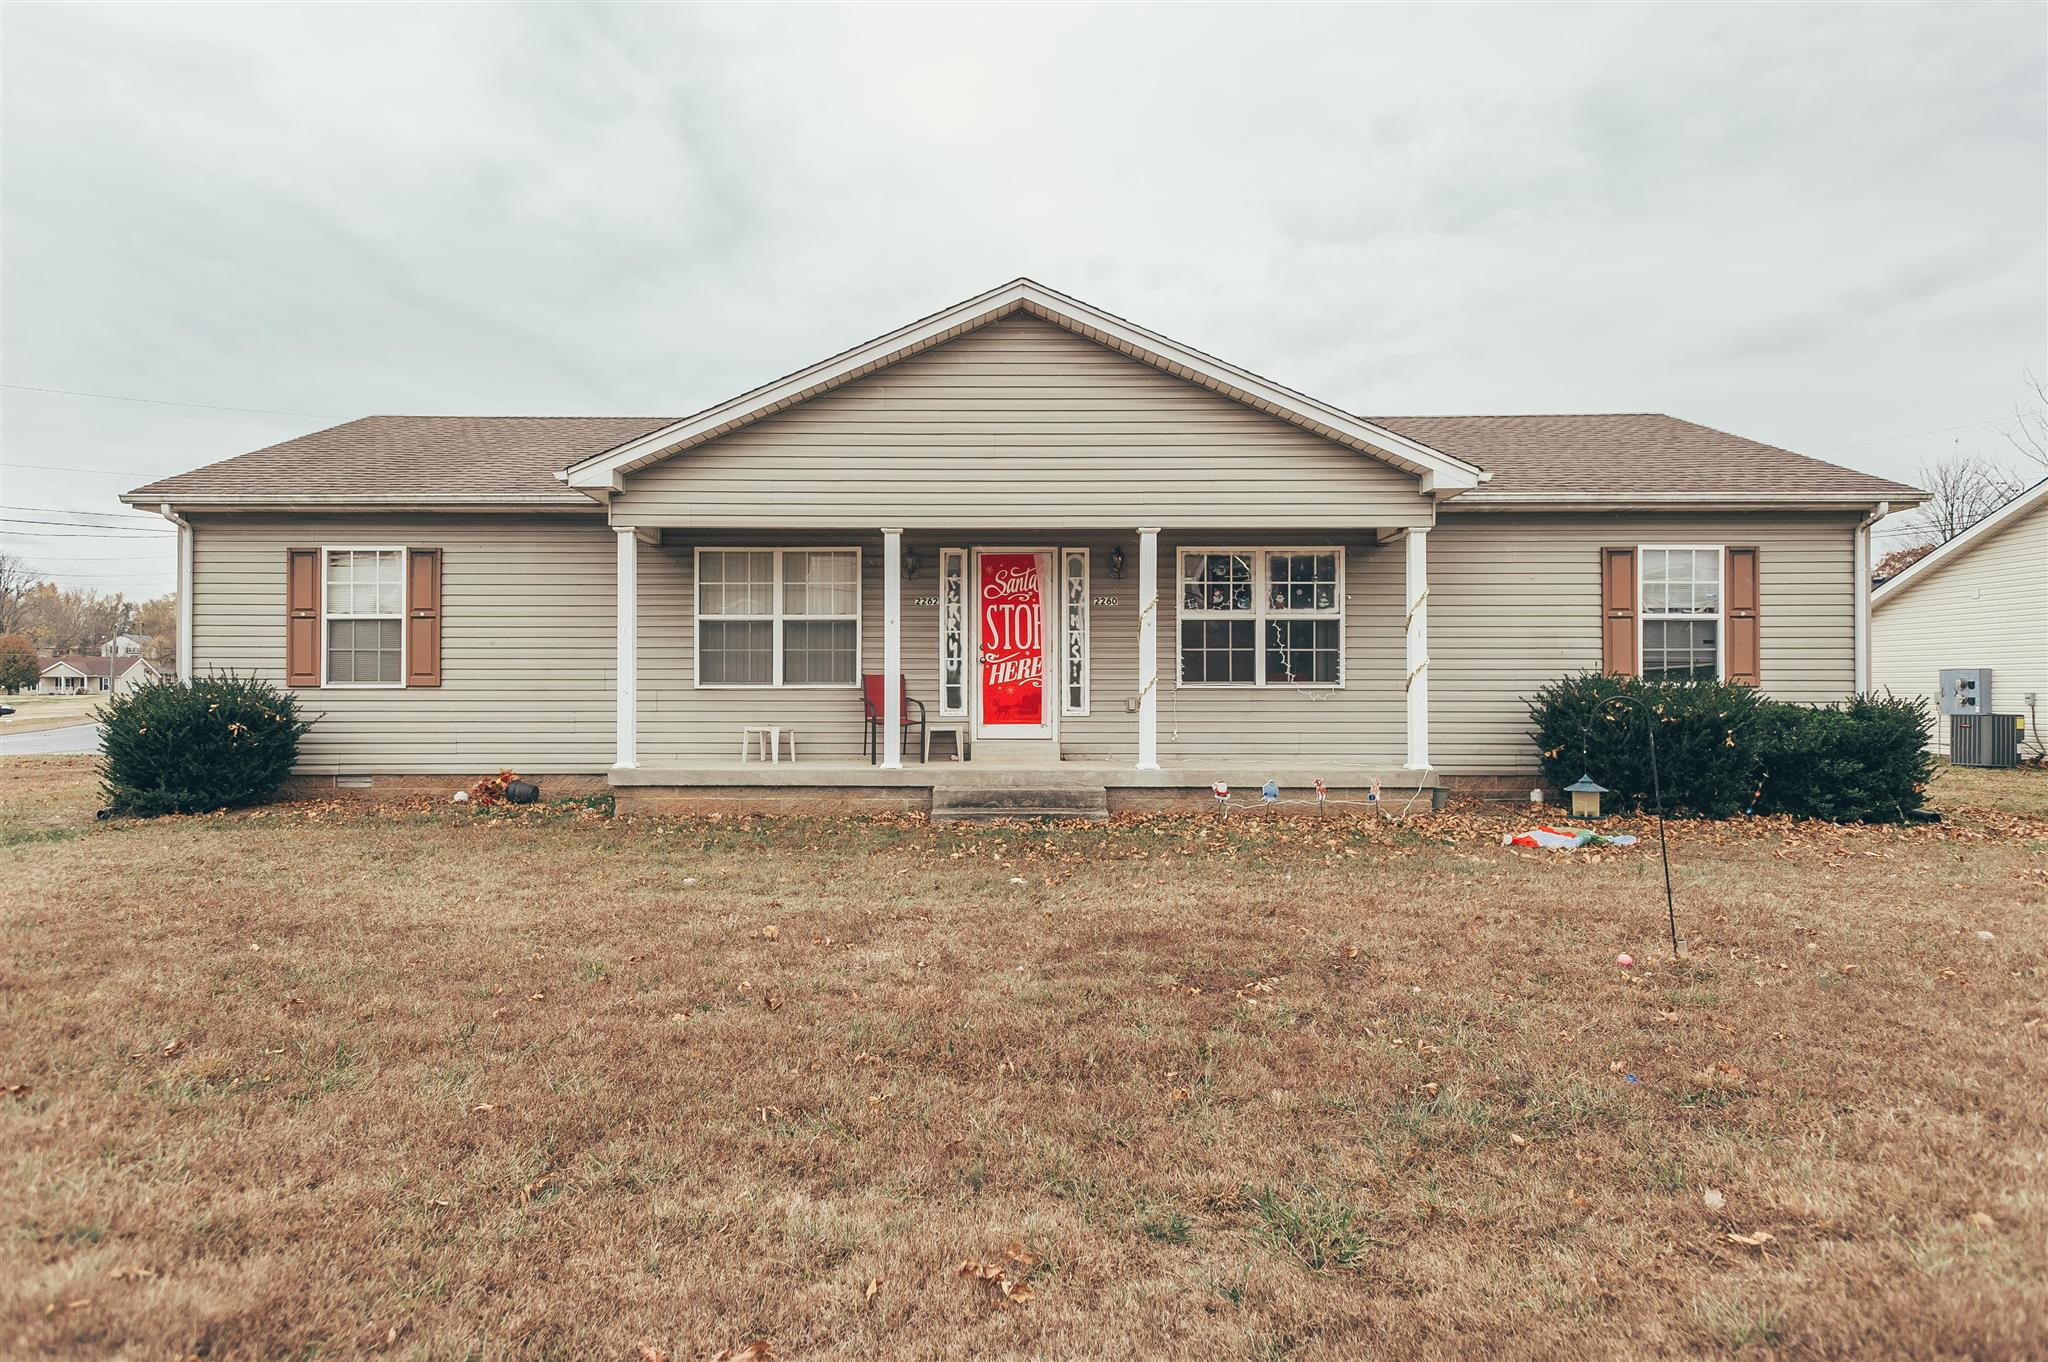 2260 17th Ave E, Springfield, TN 37172